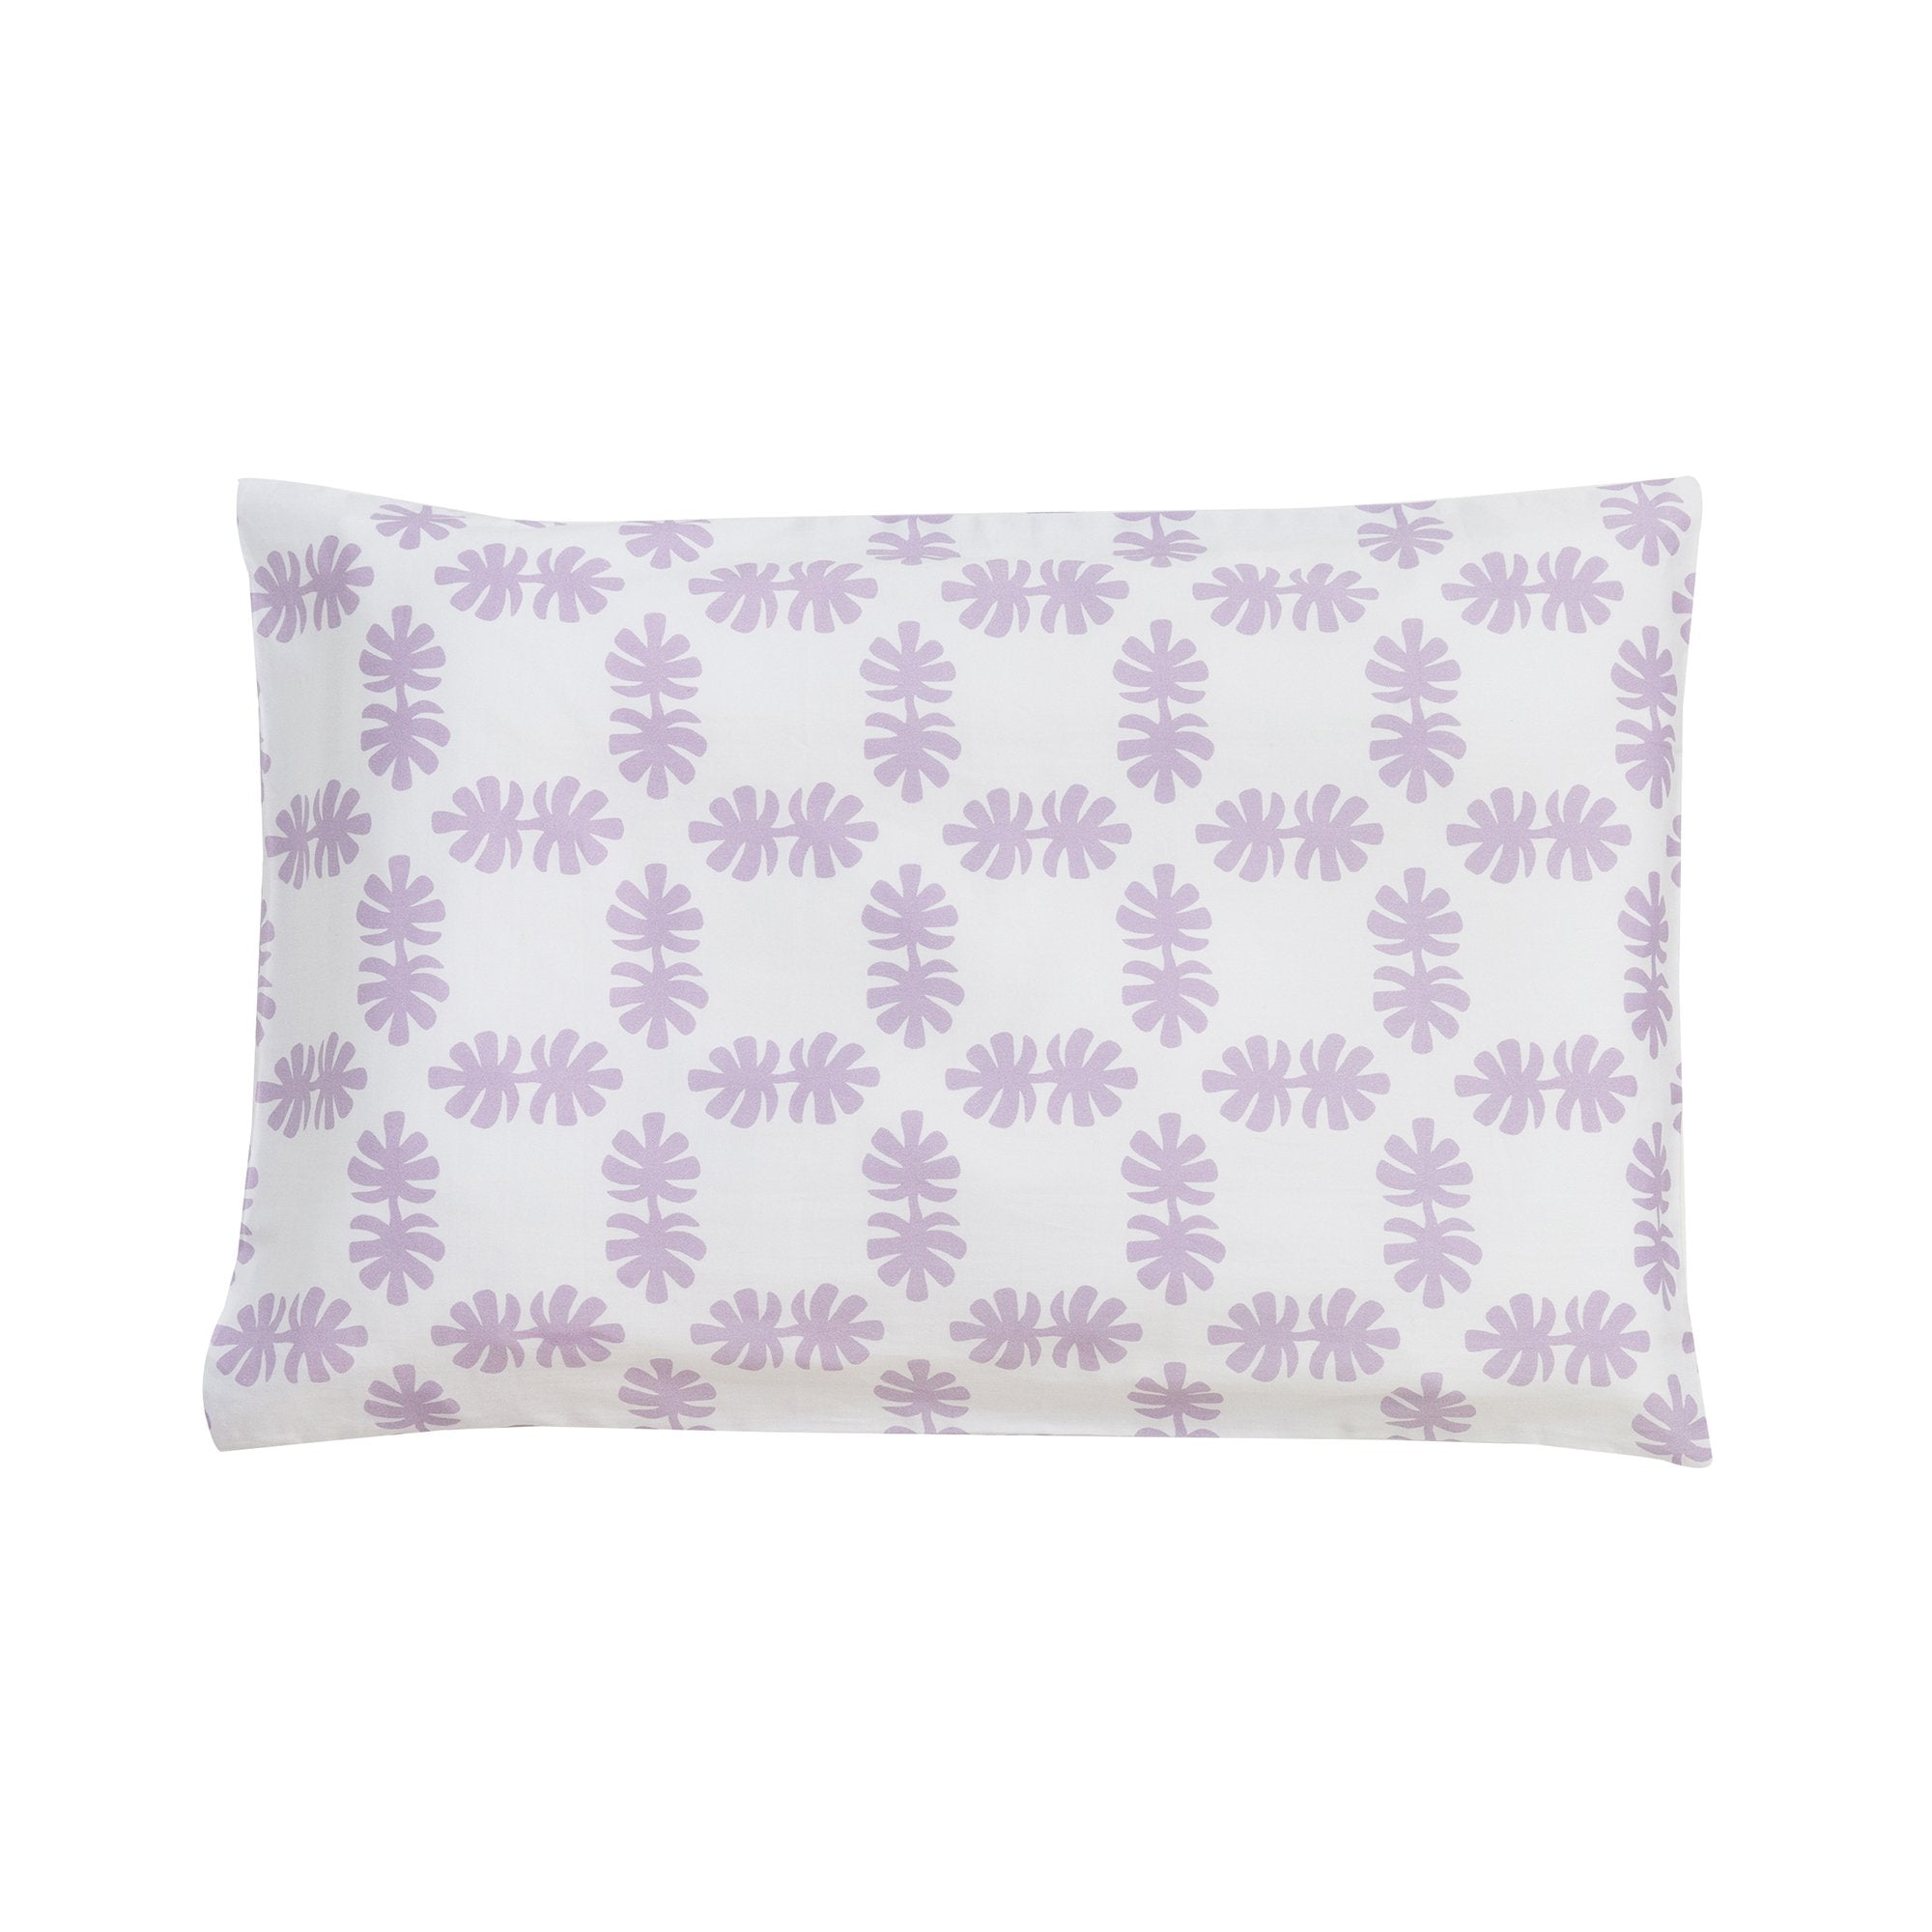 Kikau's Lovely Lilac Coco Palm kids pillowcase on white background